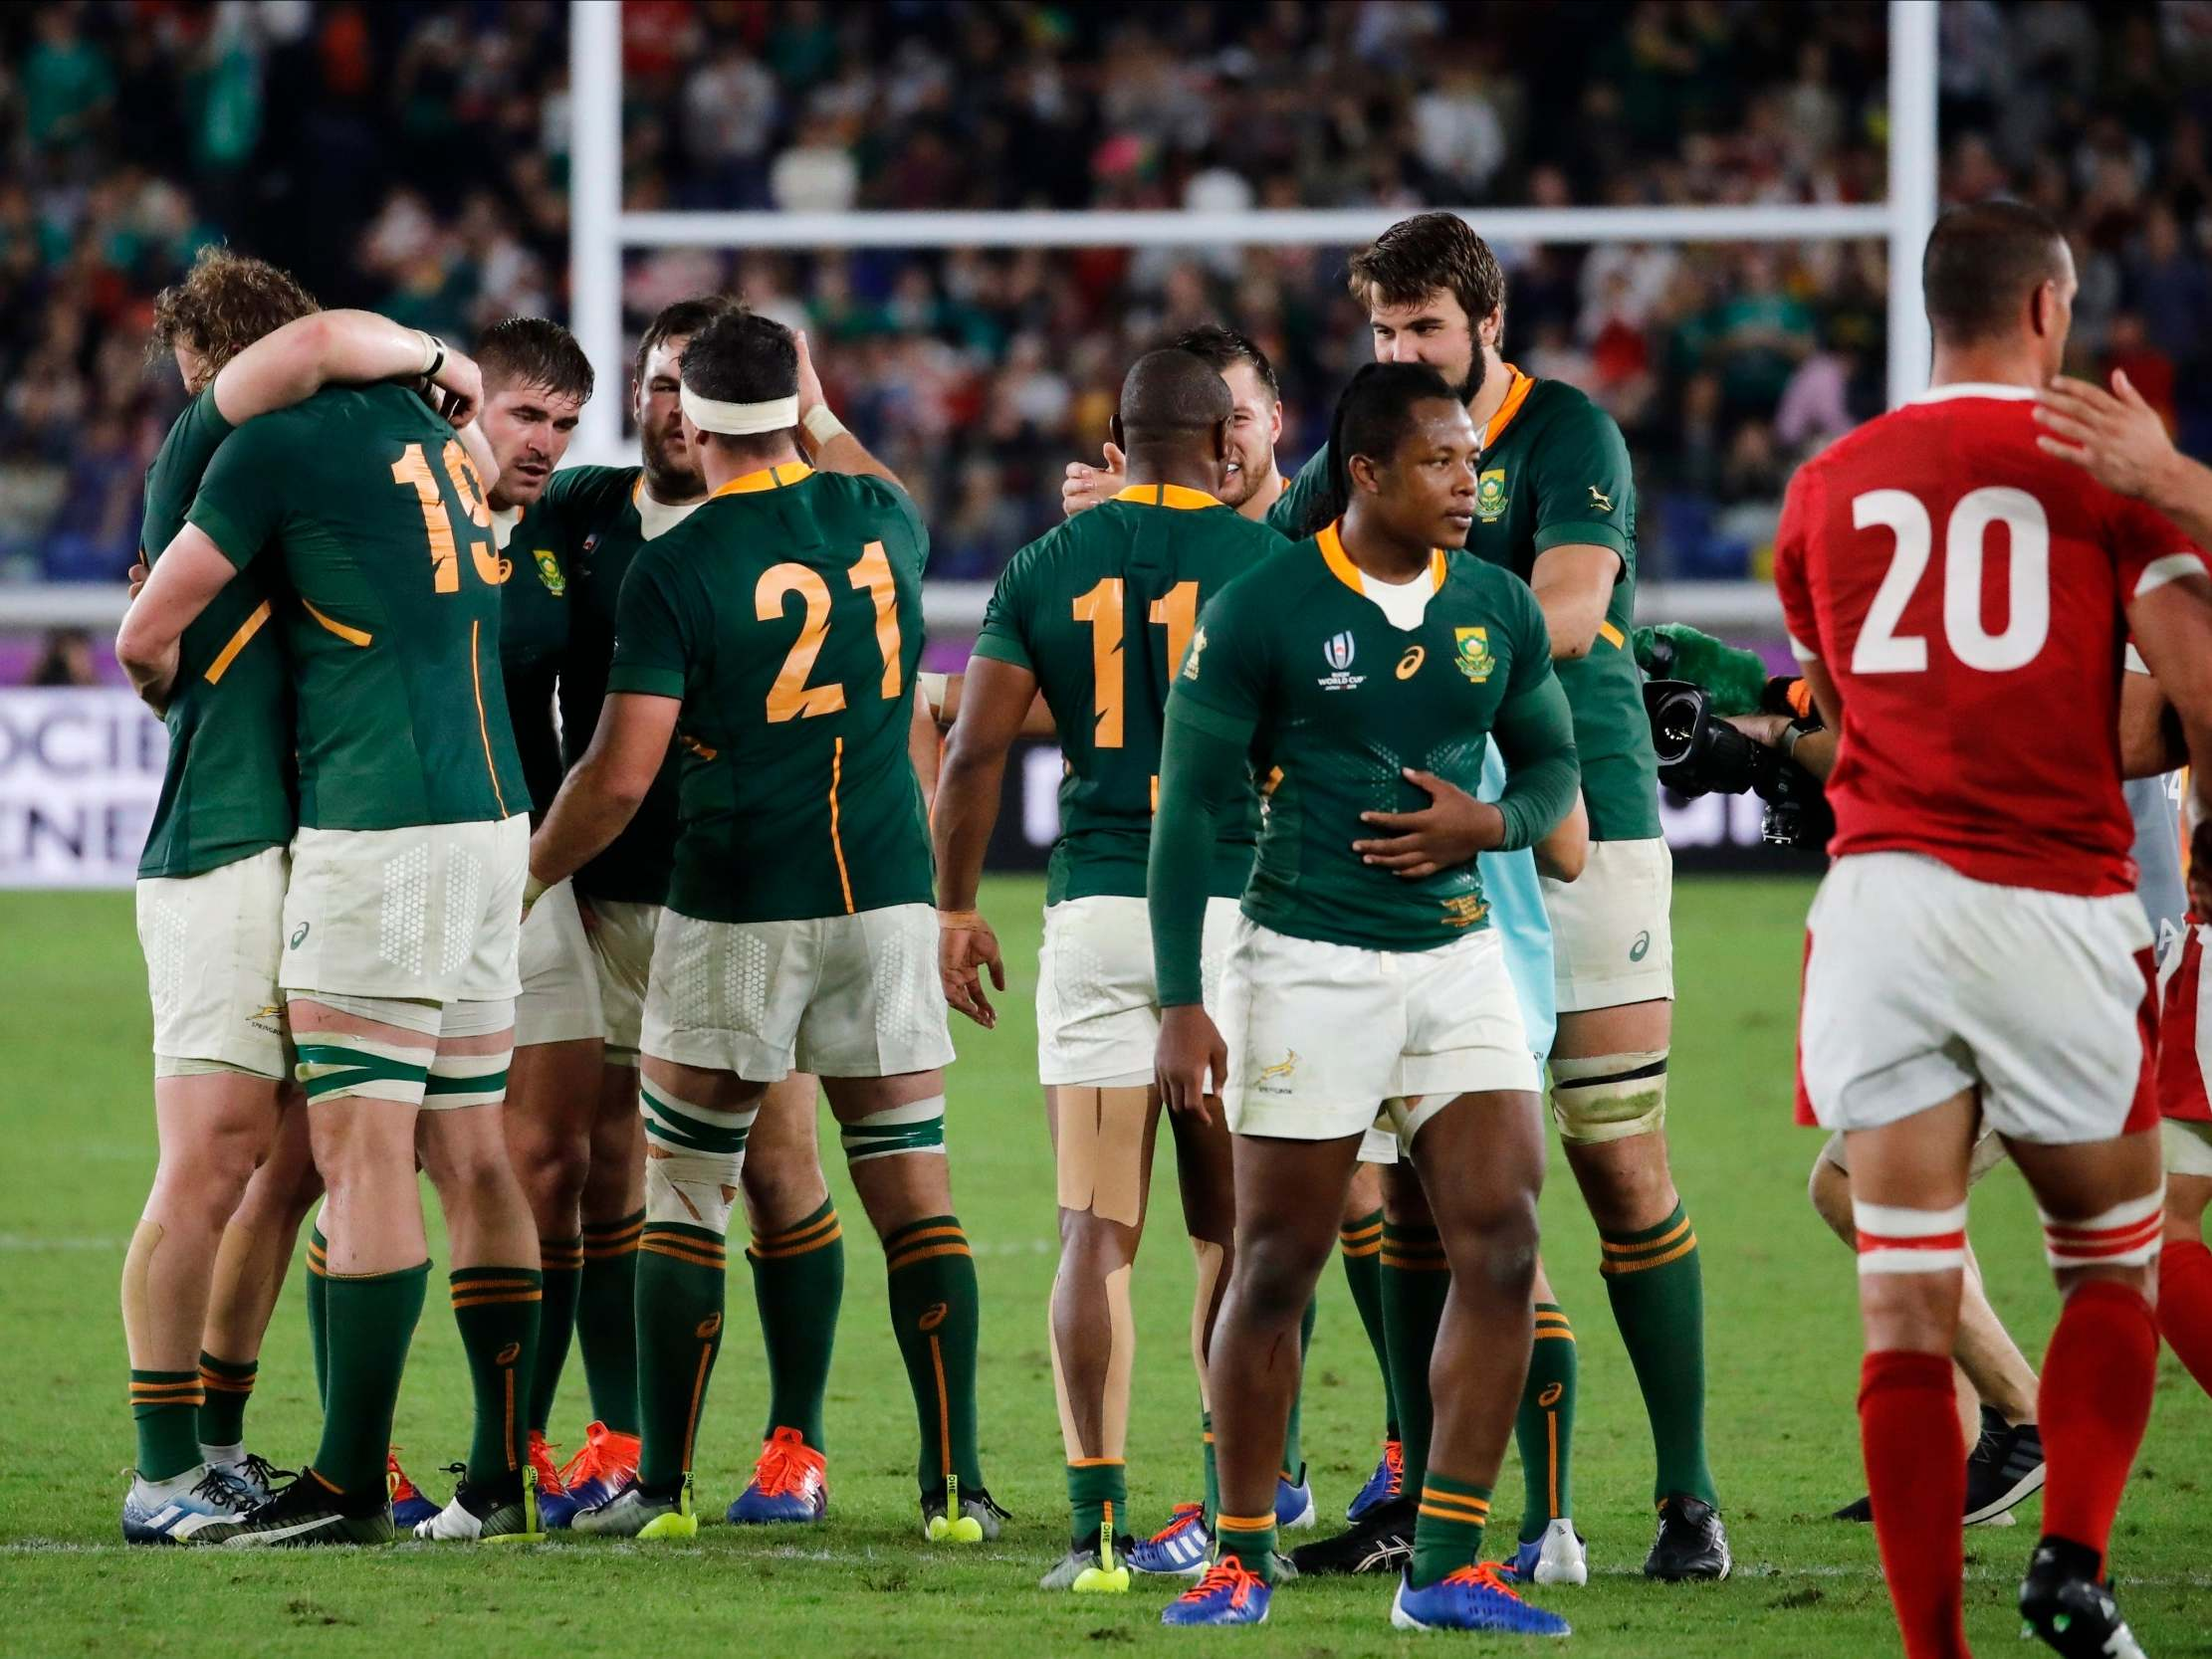 Wales vs South Africa Rugby World Cup LIVE: Result and reaction from semi-final fixture